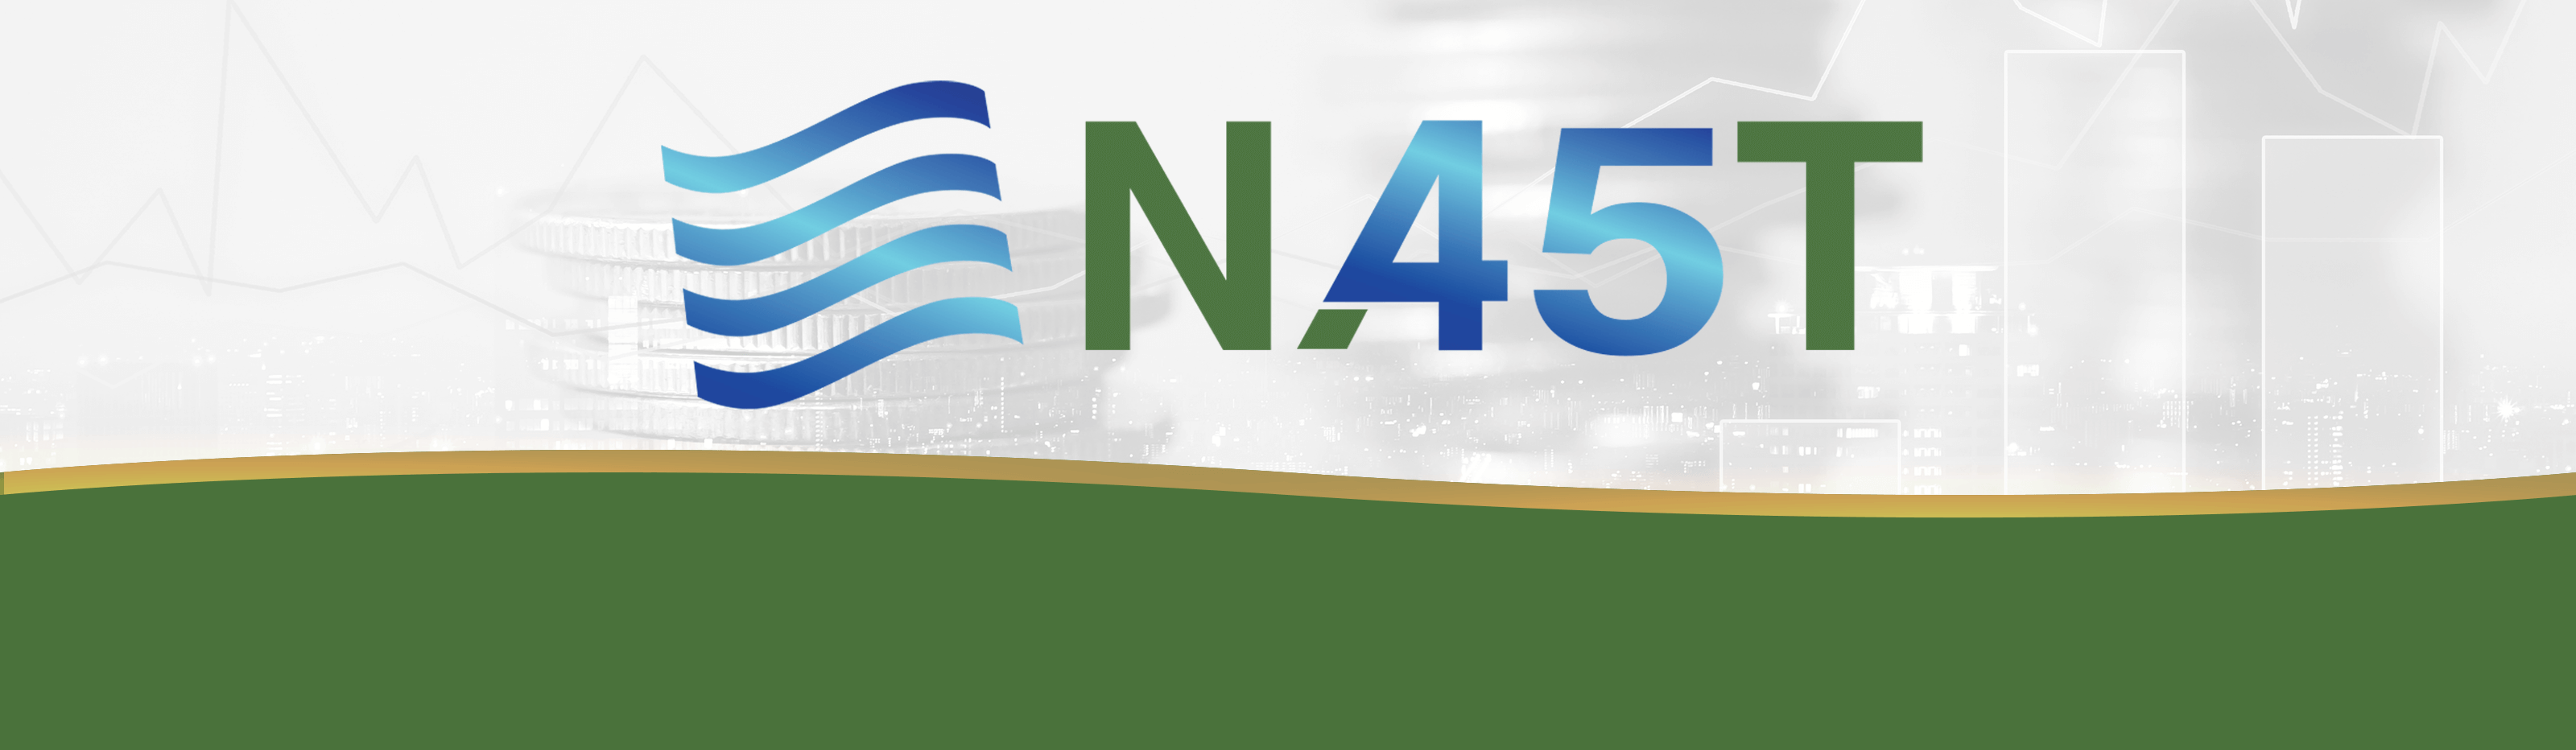 NAST 45 years banner image